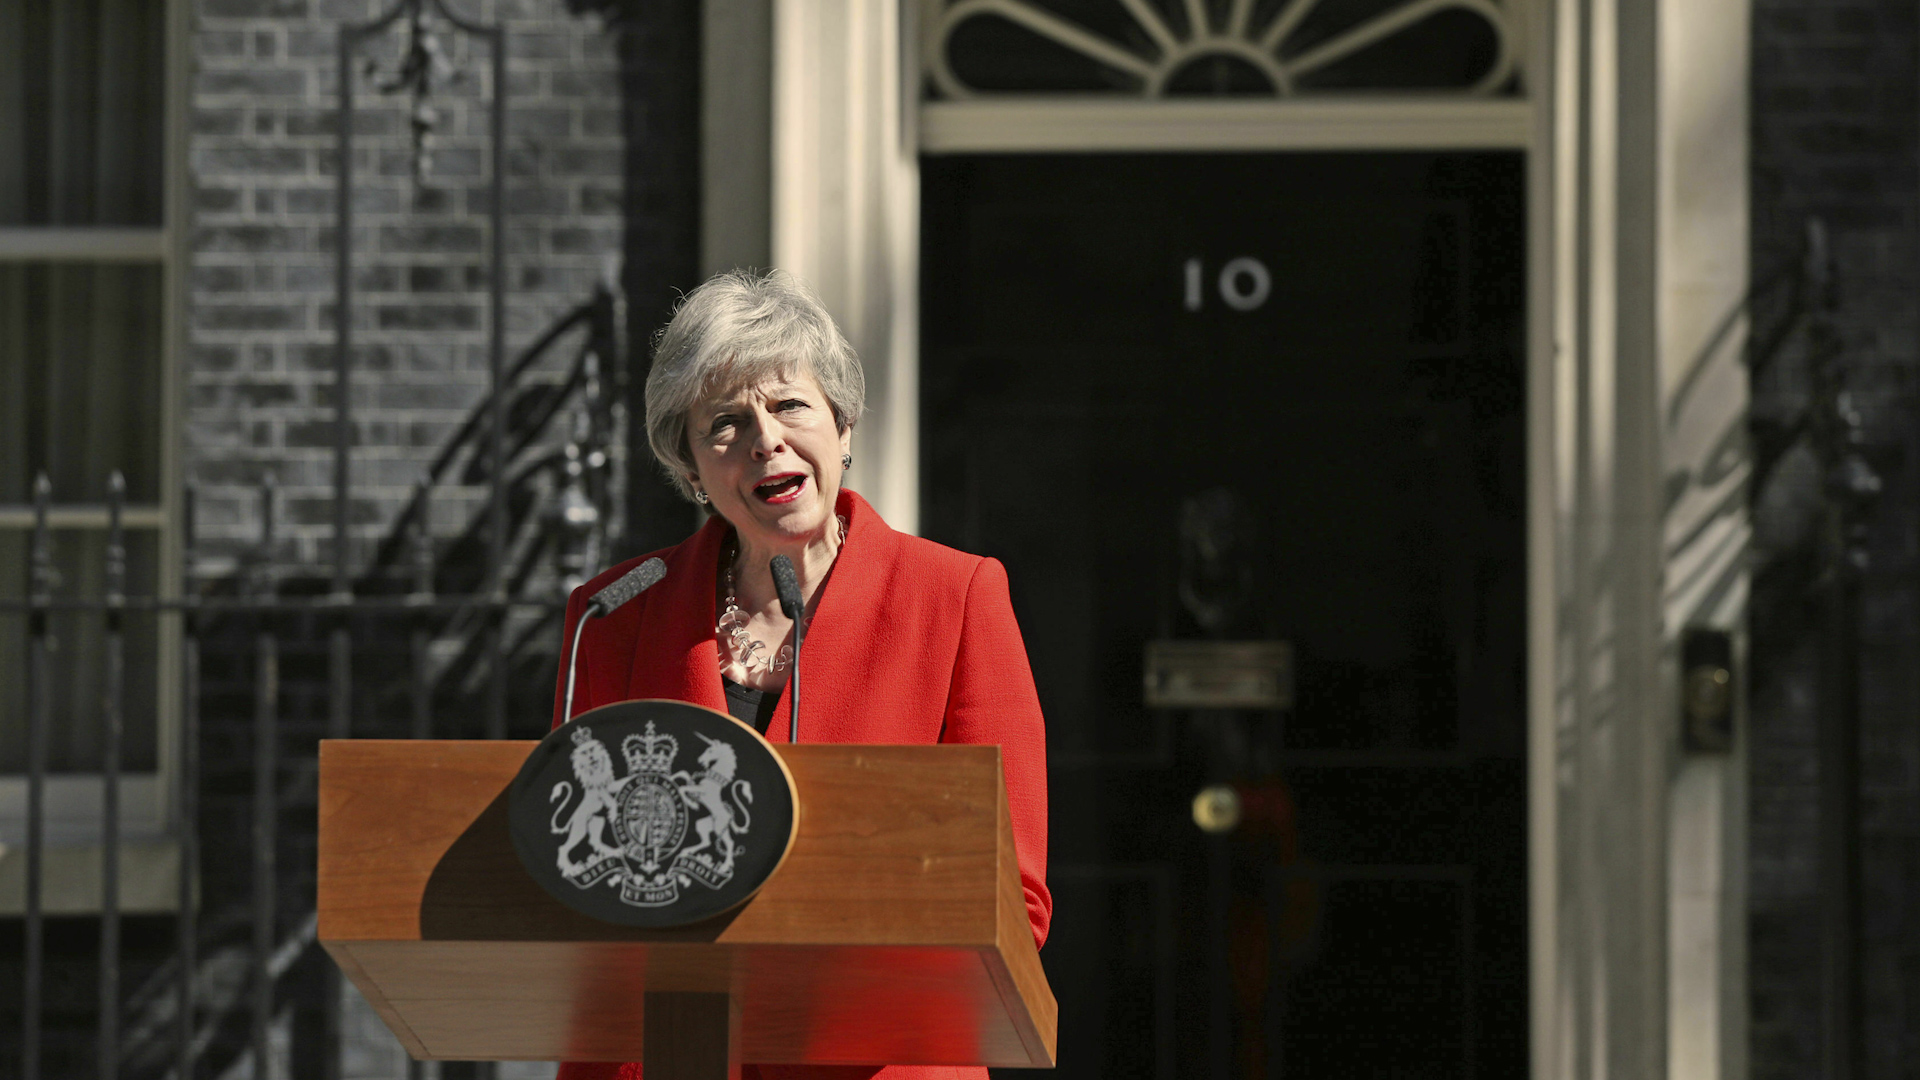 Theresa May to resign, make way for new prime minister, after Brexit failures